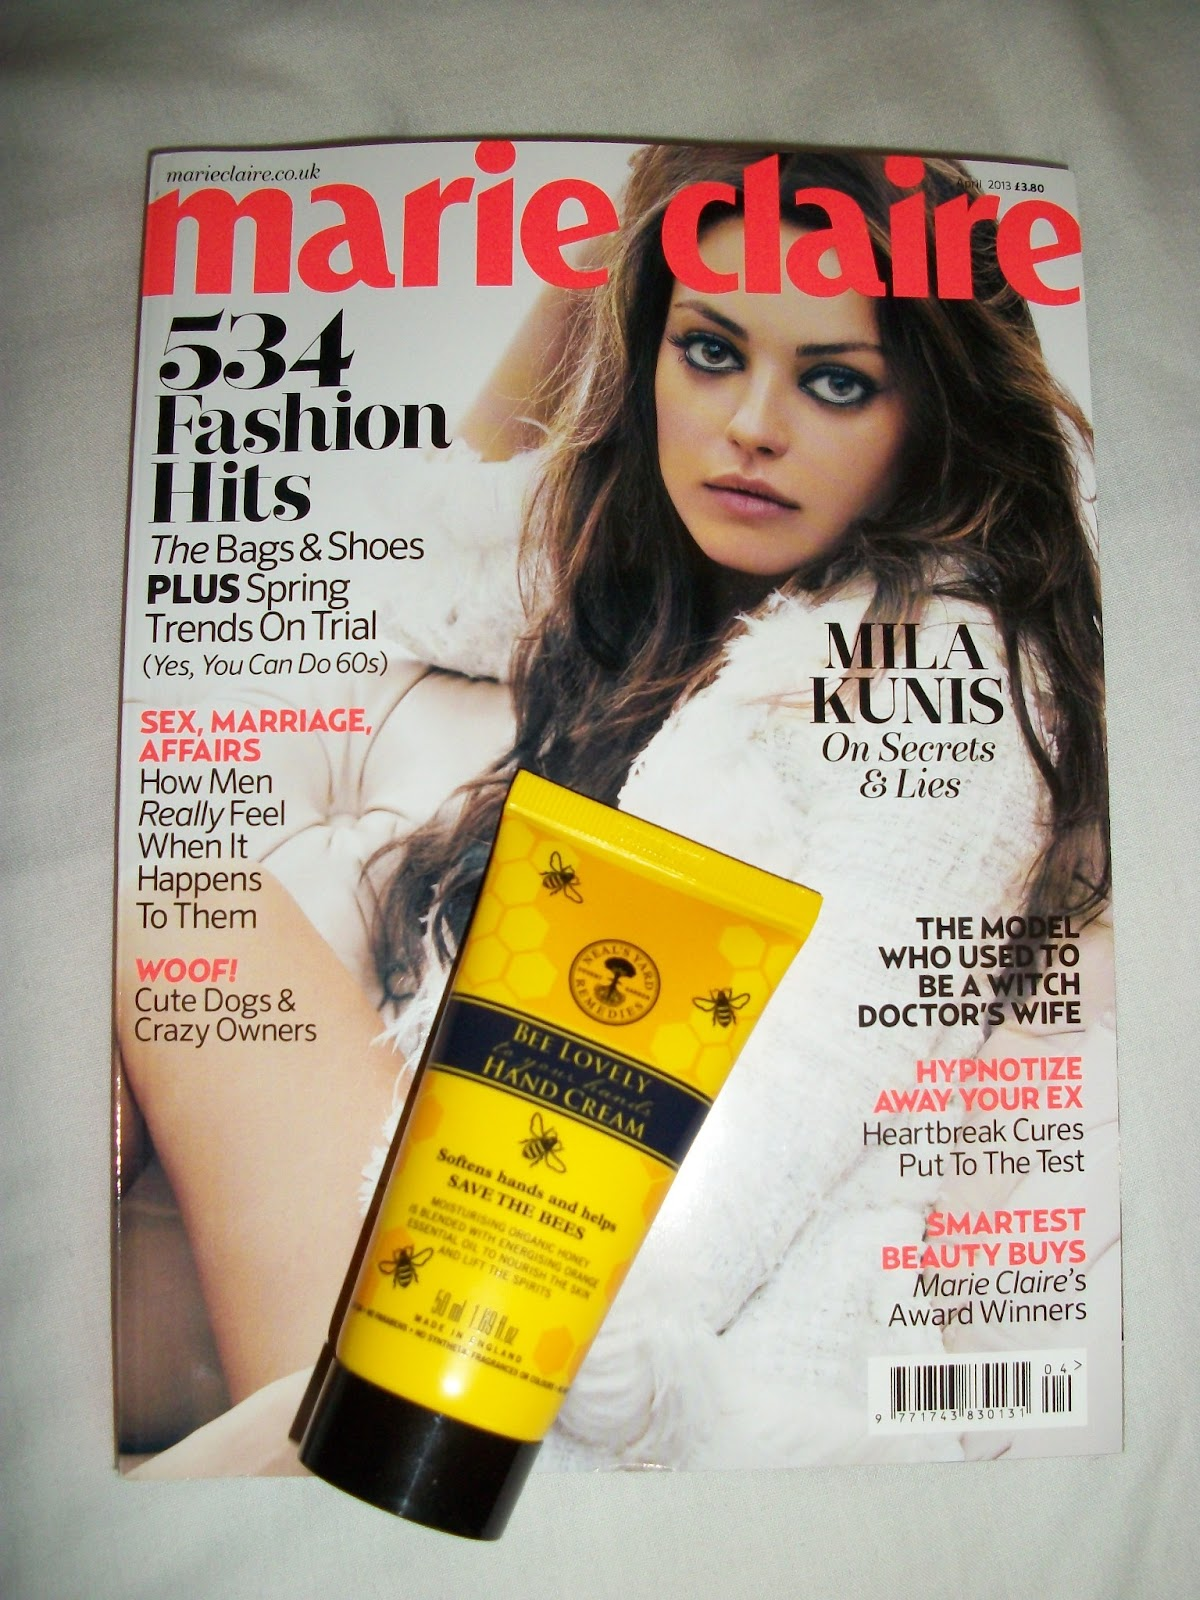 april, cosmopolitan, elemis, freebies, glamour, january jones, magazine, marie claire, mila kunis, neals yard, percy and reed, zooey deschanel,